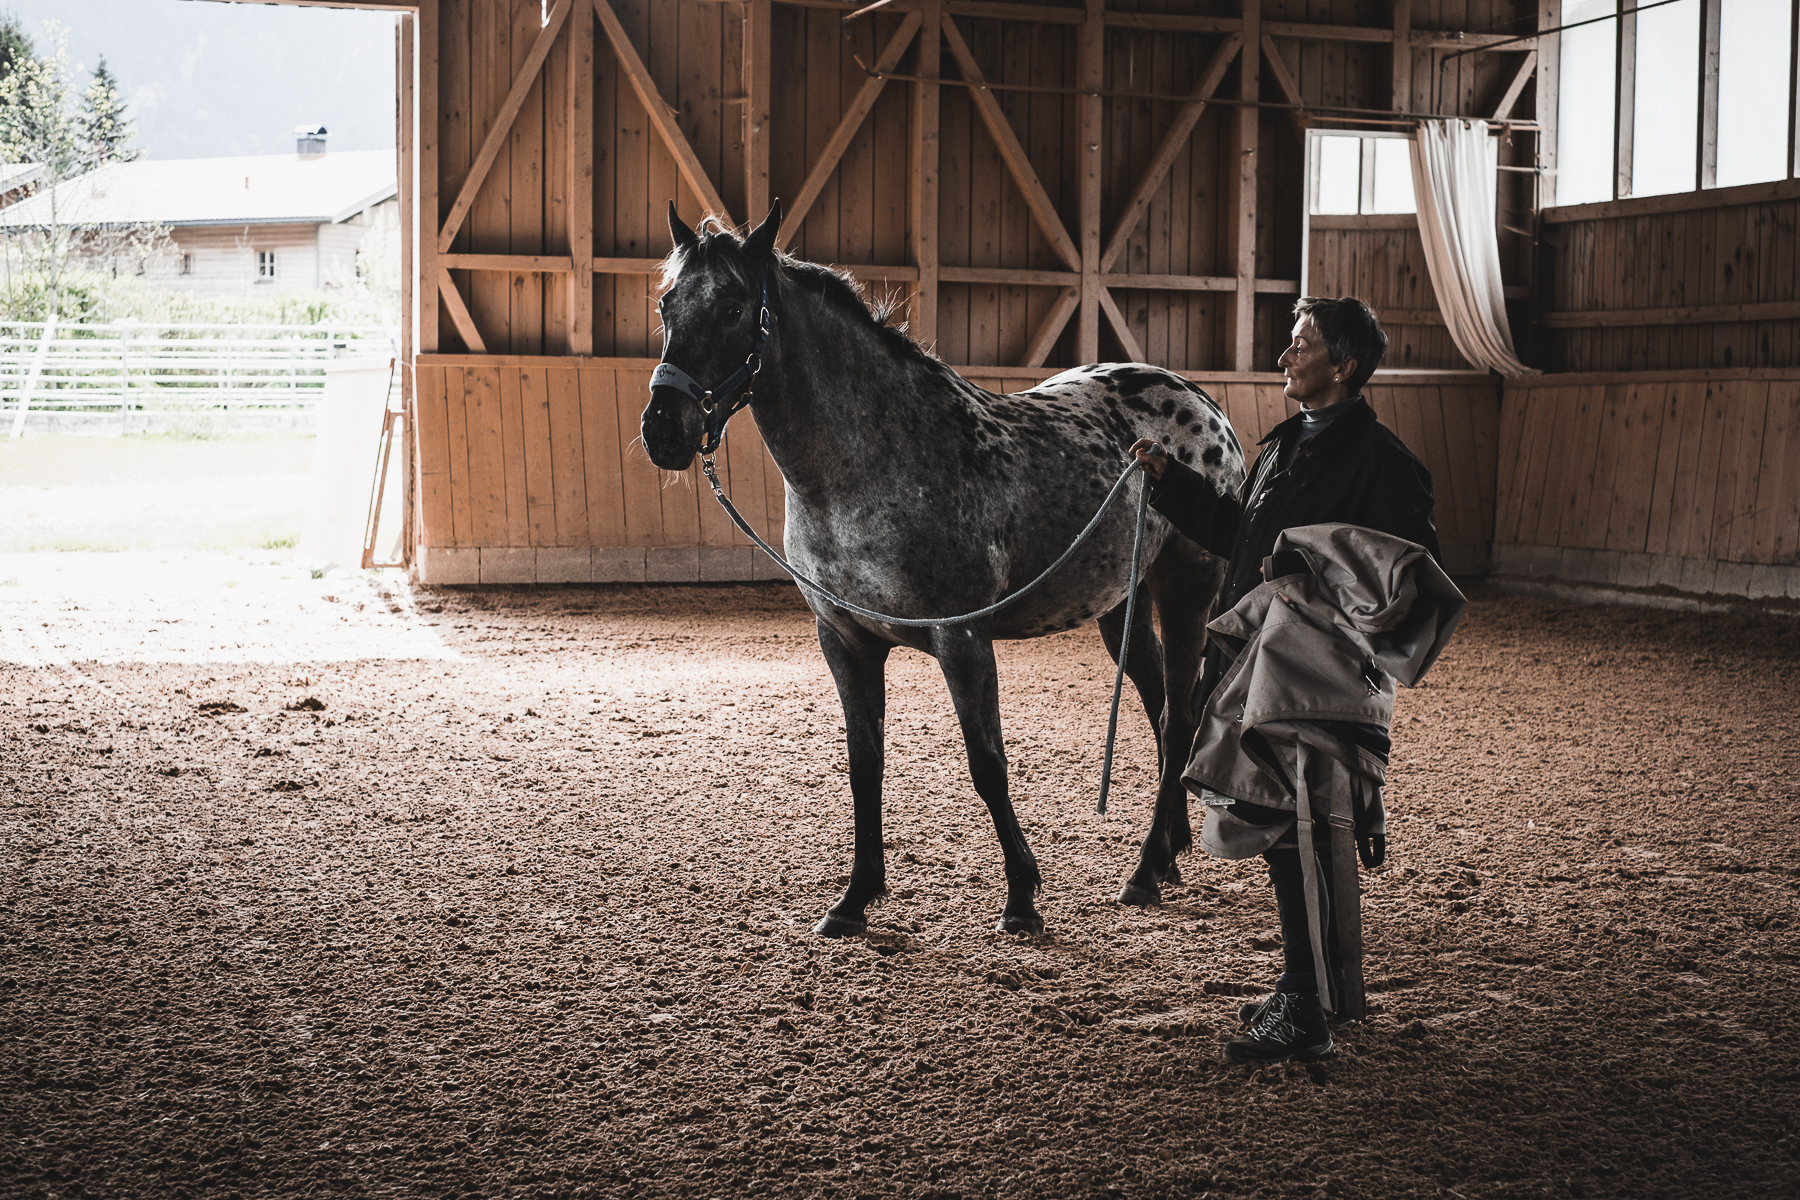 Horse Riding at Bachmair Weissach SPA Hotel Tegernsee - Fujifilm XT3 - Yes! Please Enjoy by Fanning Tseng-11.jpg